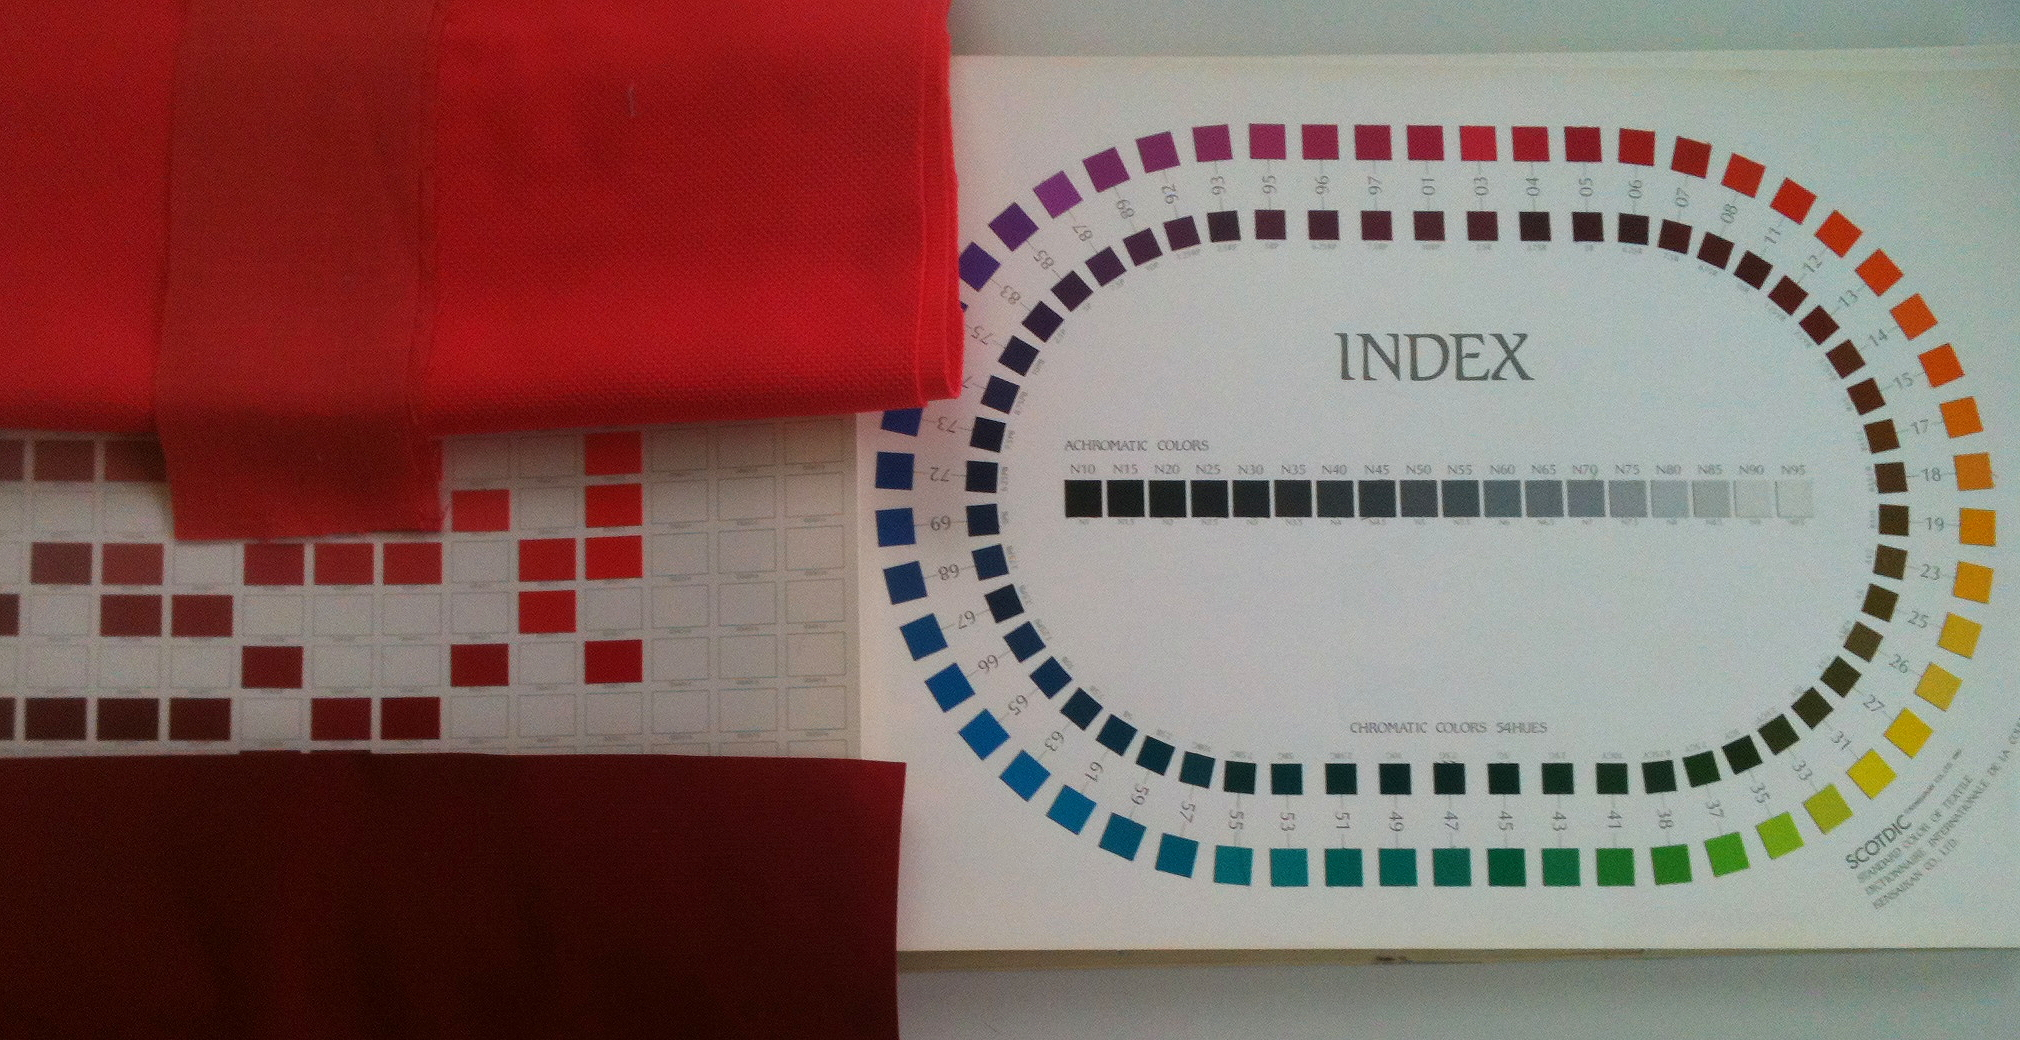 Munsell Book of Color Index | Munsell Color System; Color Matching ...